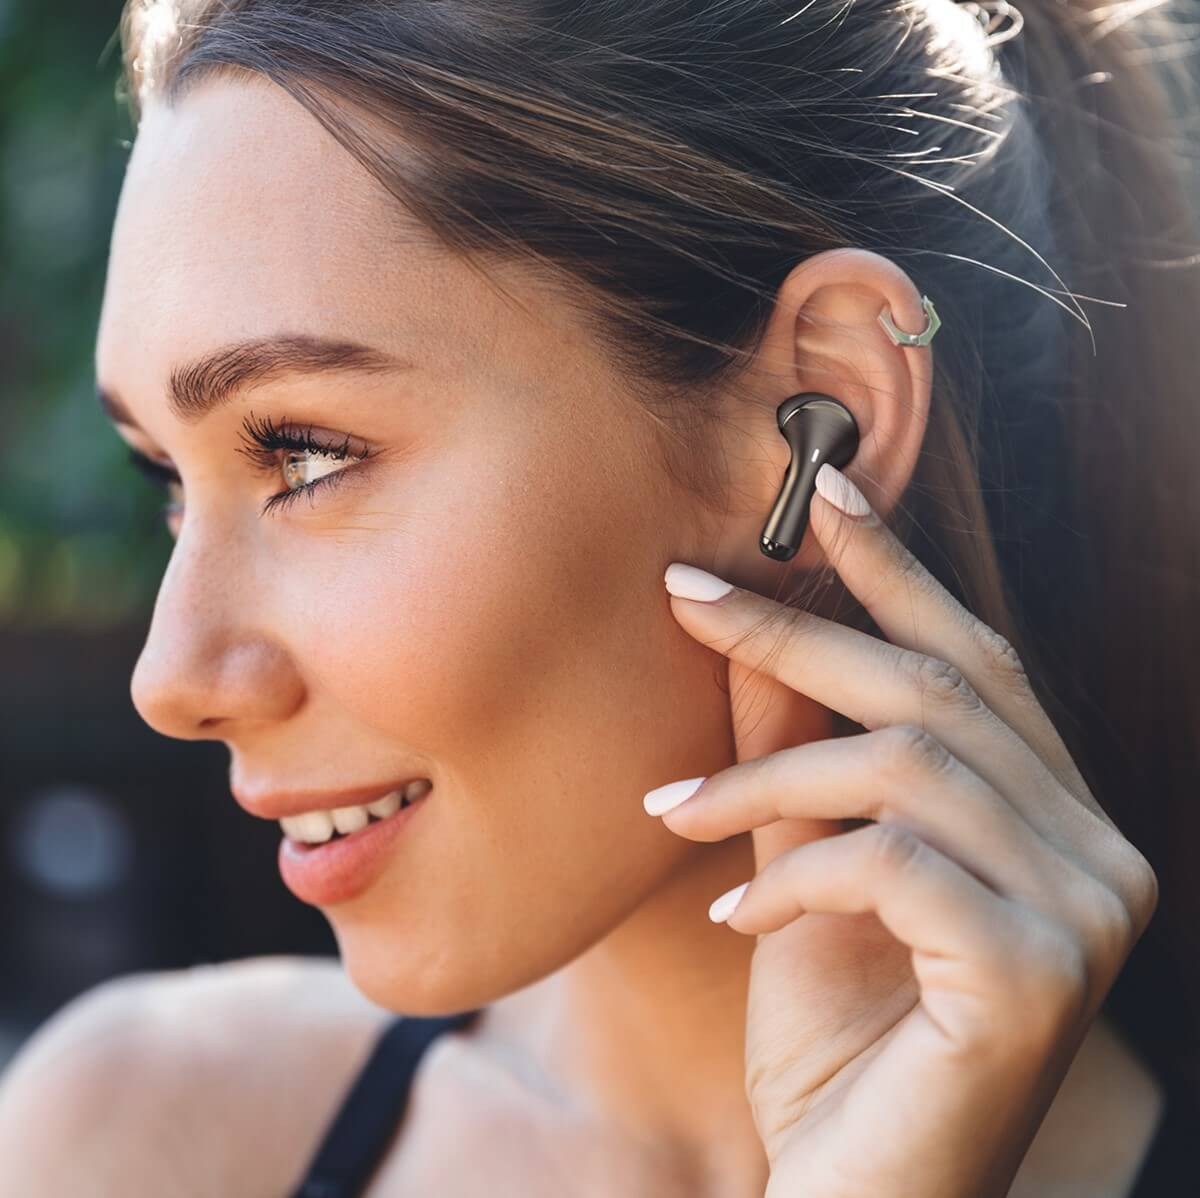 holyhigh-noise-canceling-wireless-earbuds-with-usb-c-et3-details-8